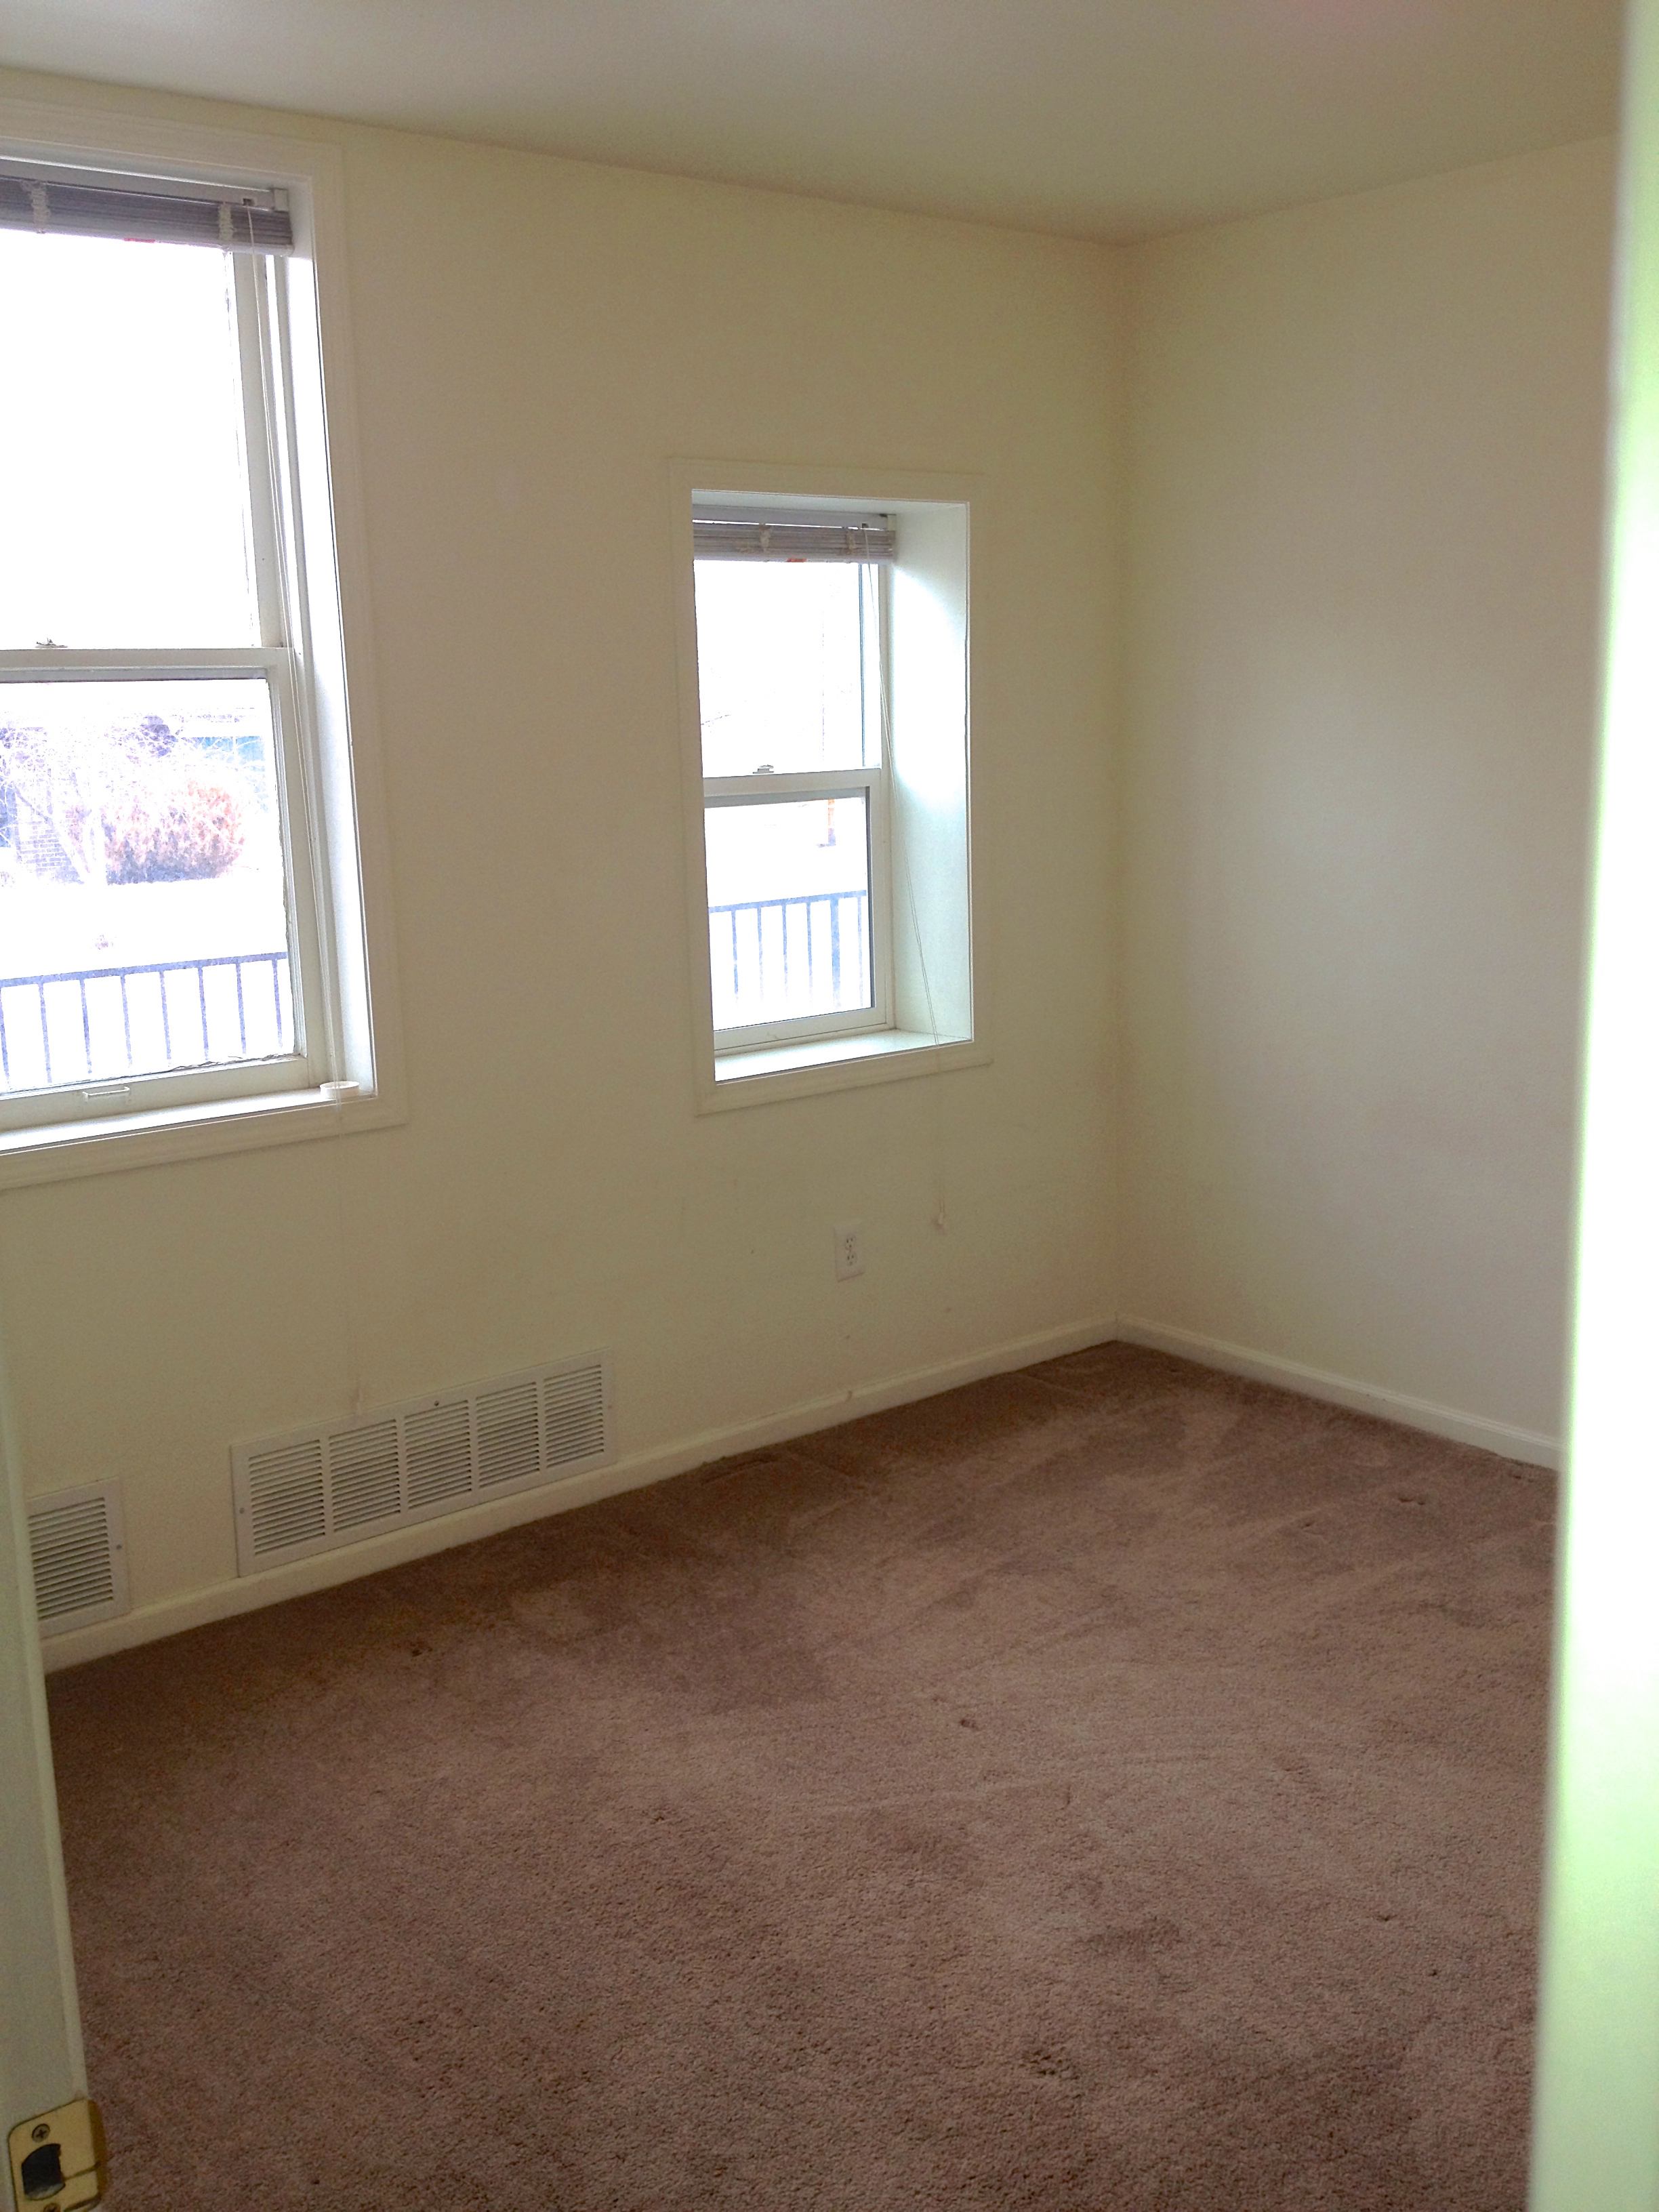 1 Bedroom 1 Bathroom Apartment Available Soon 309 Casper Rental Central